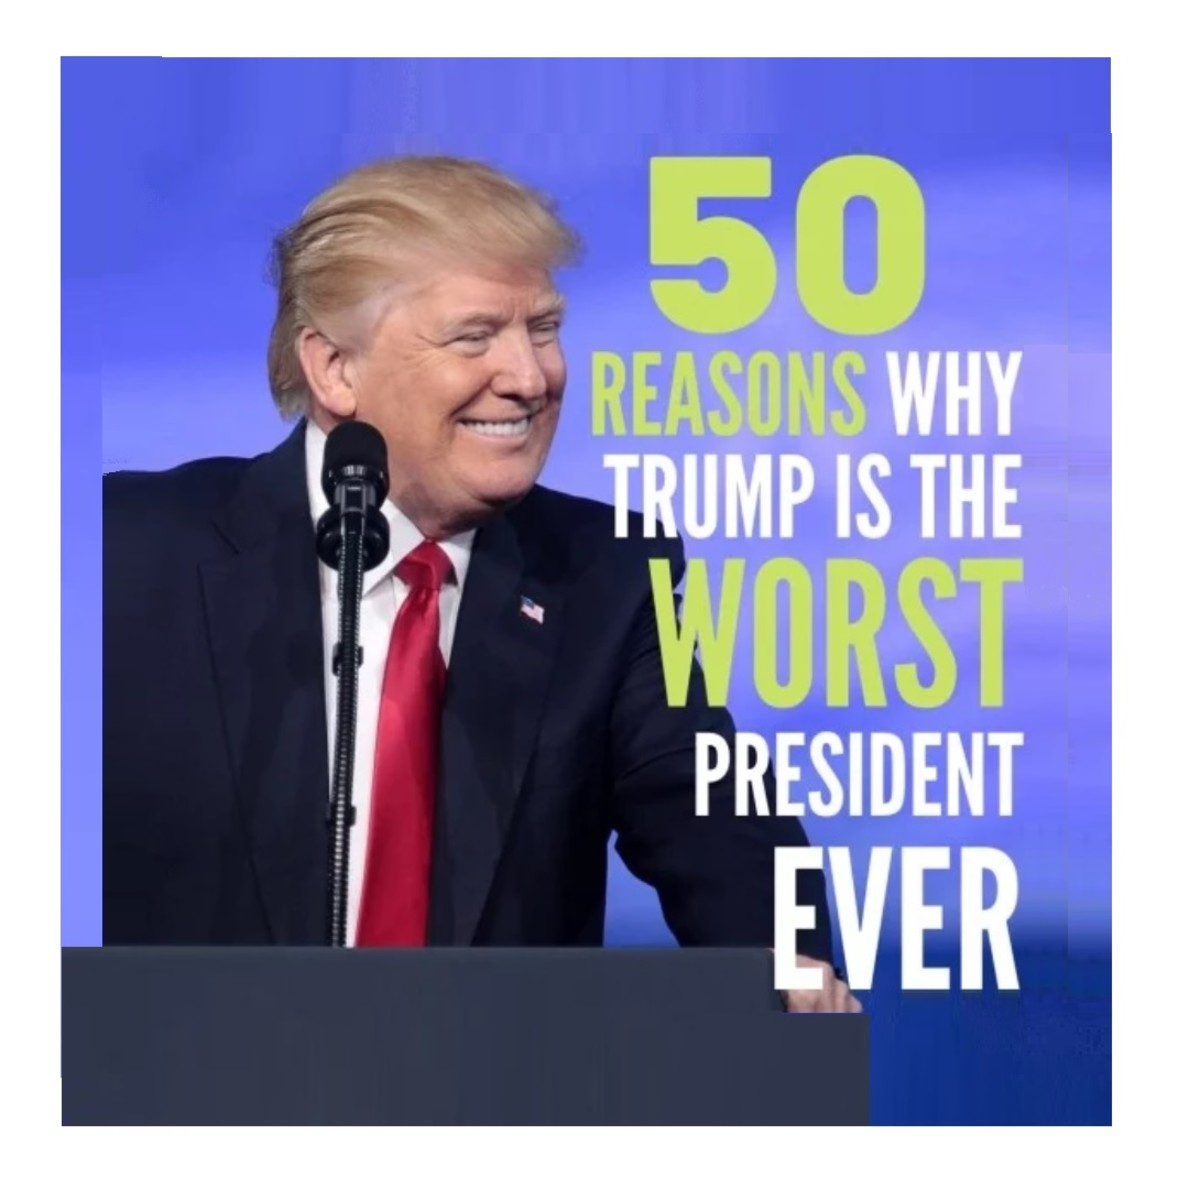 fifty-reasons-why-donald-trump-is-a-horrible-president